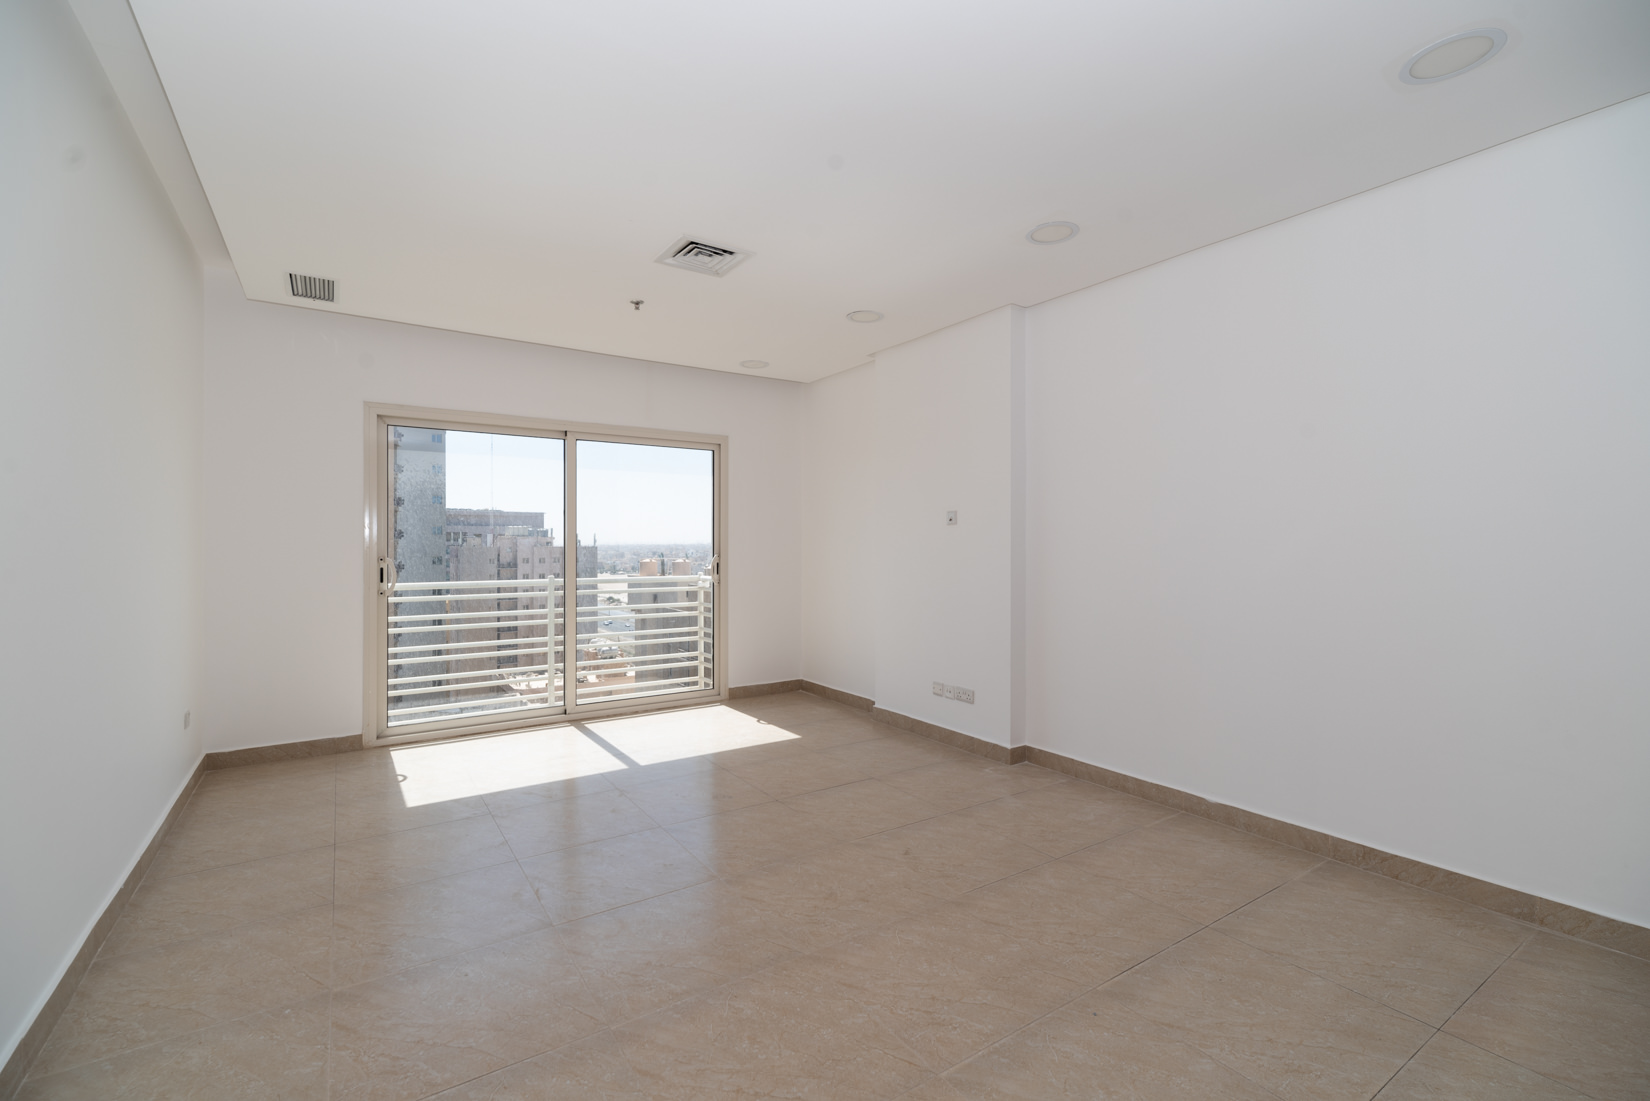 Mahboula – unfurnished, three bedroom apartment